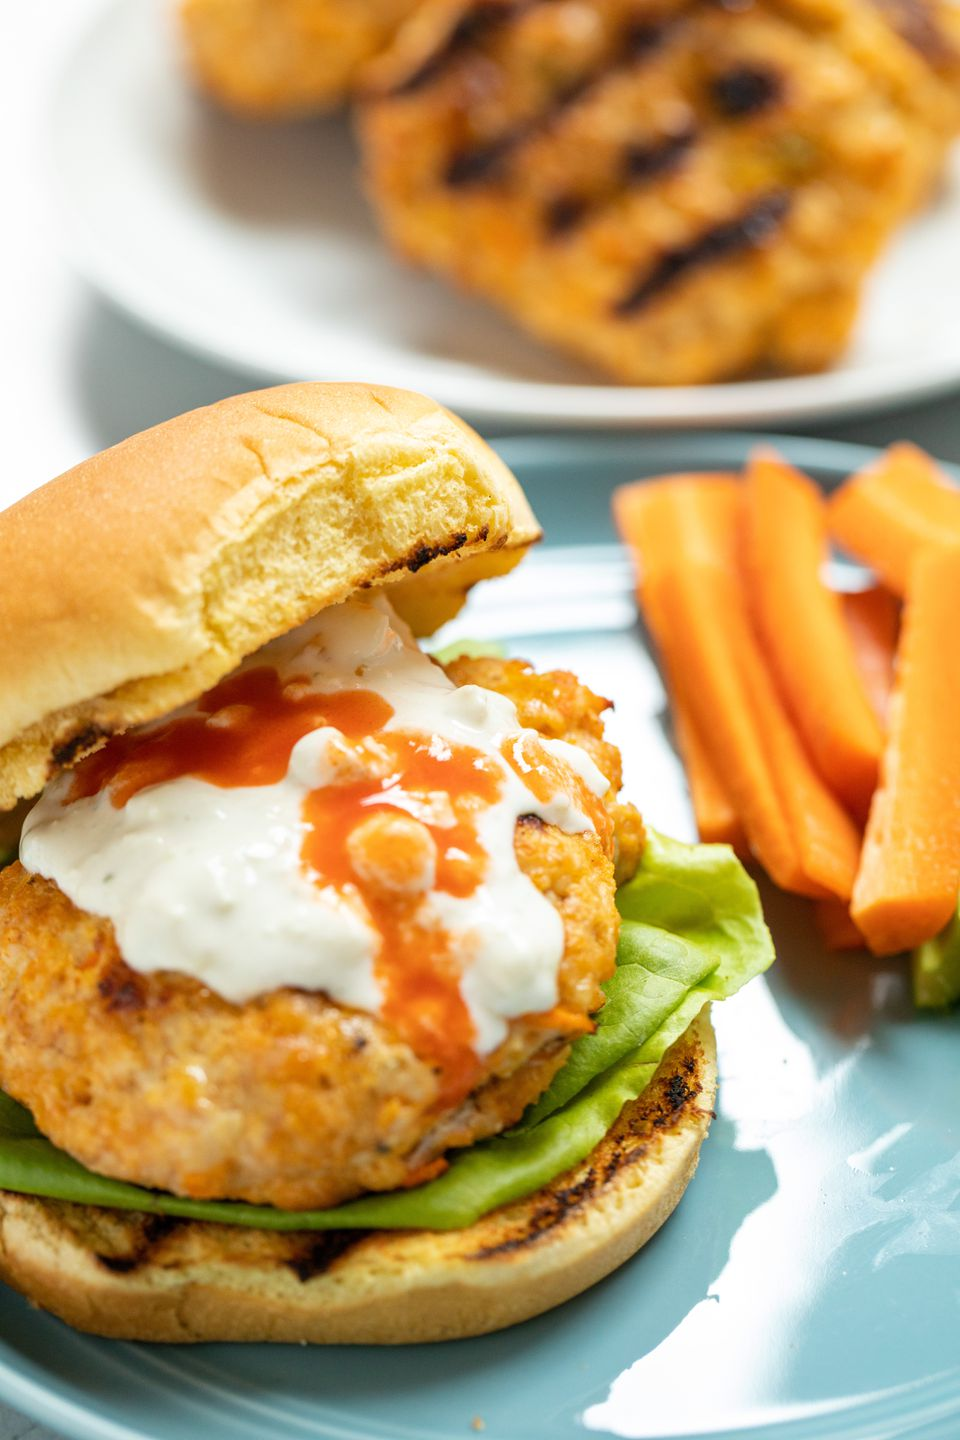 The top bun set to the side of the BEST spicy buffalo chicken burger.